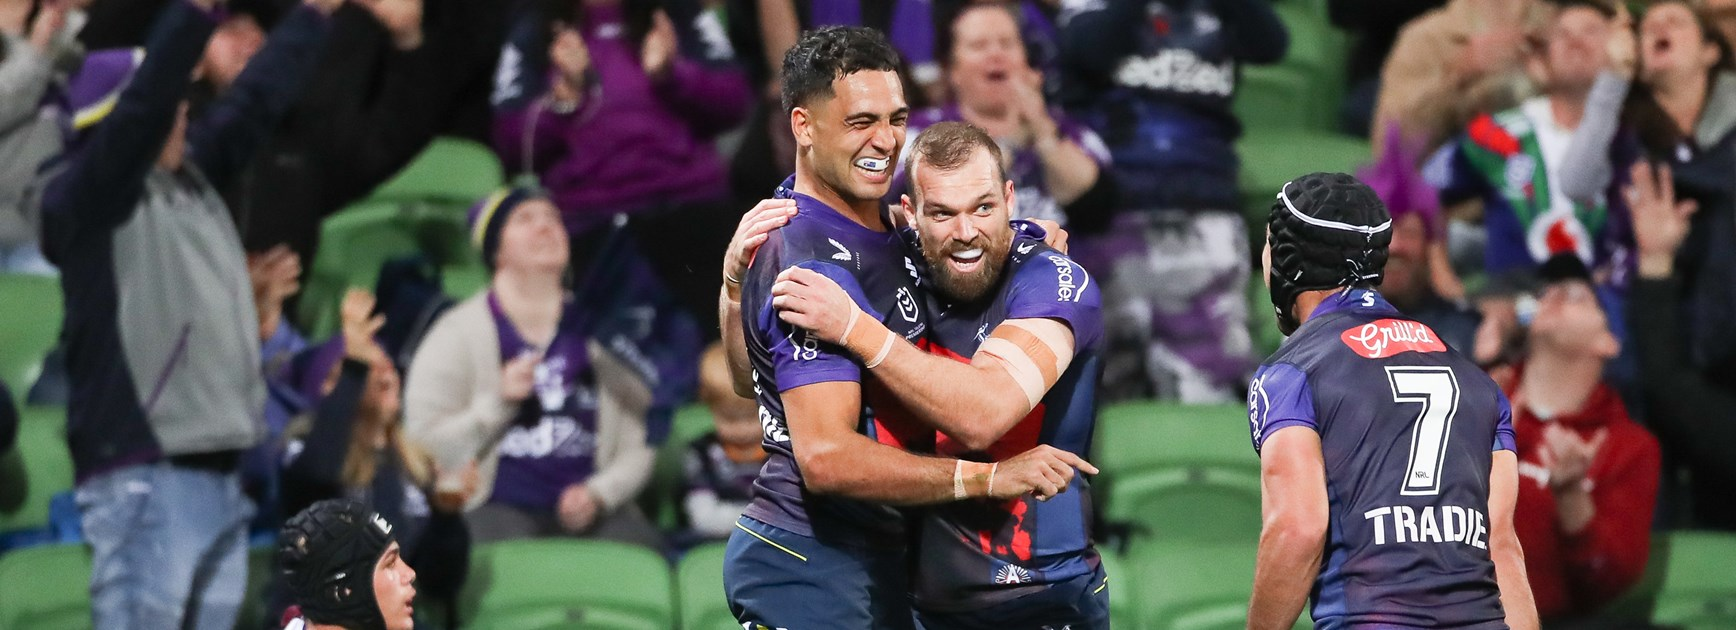 Round 7 snapshot: Prop surges into Dally M contention